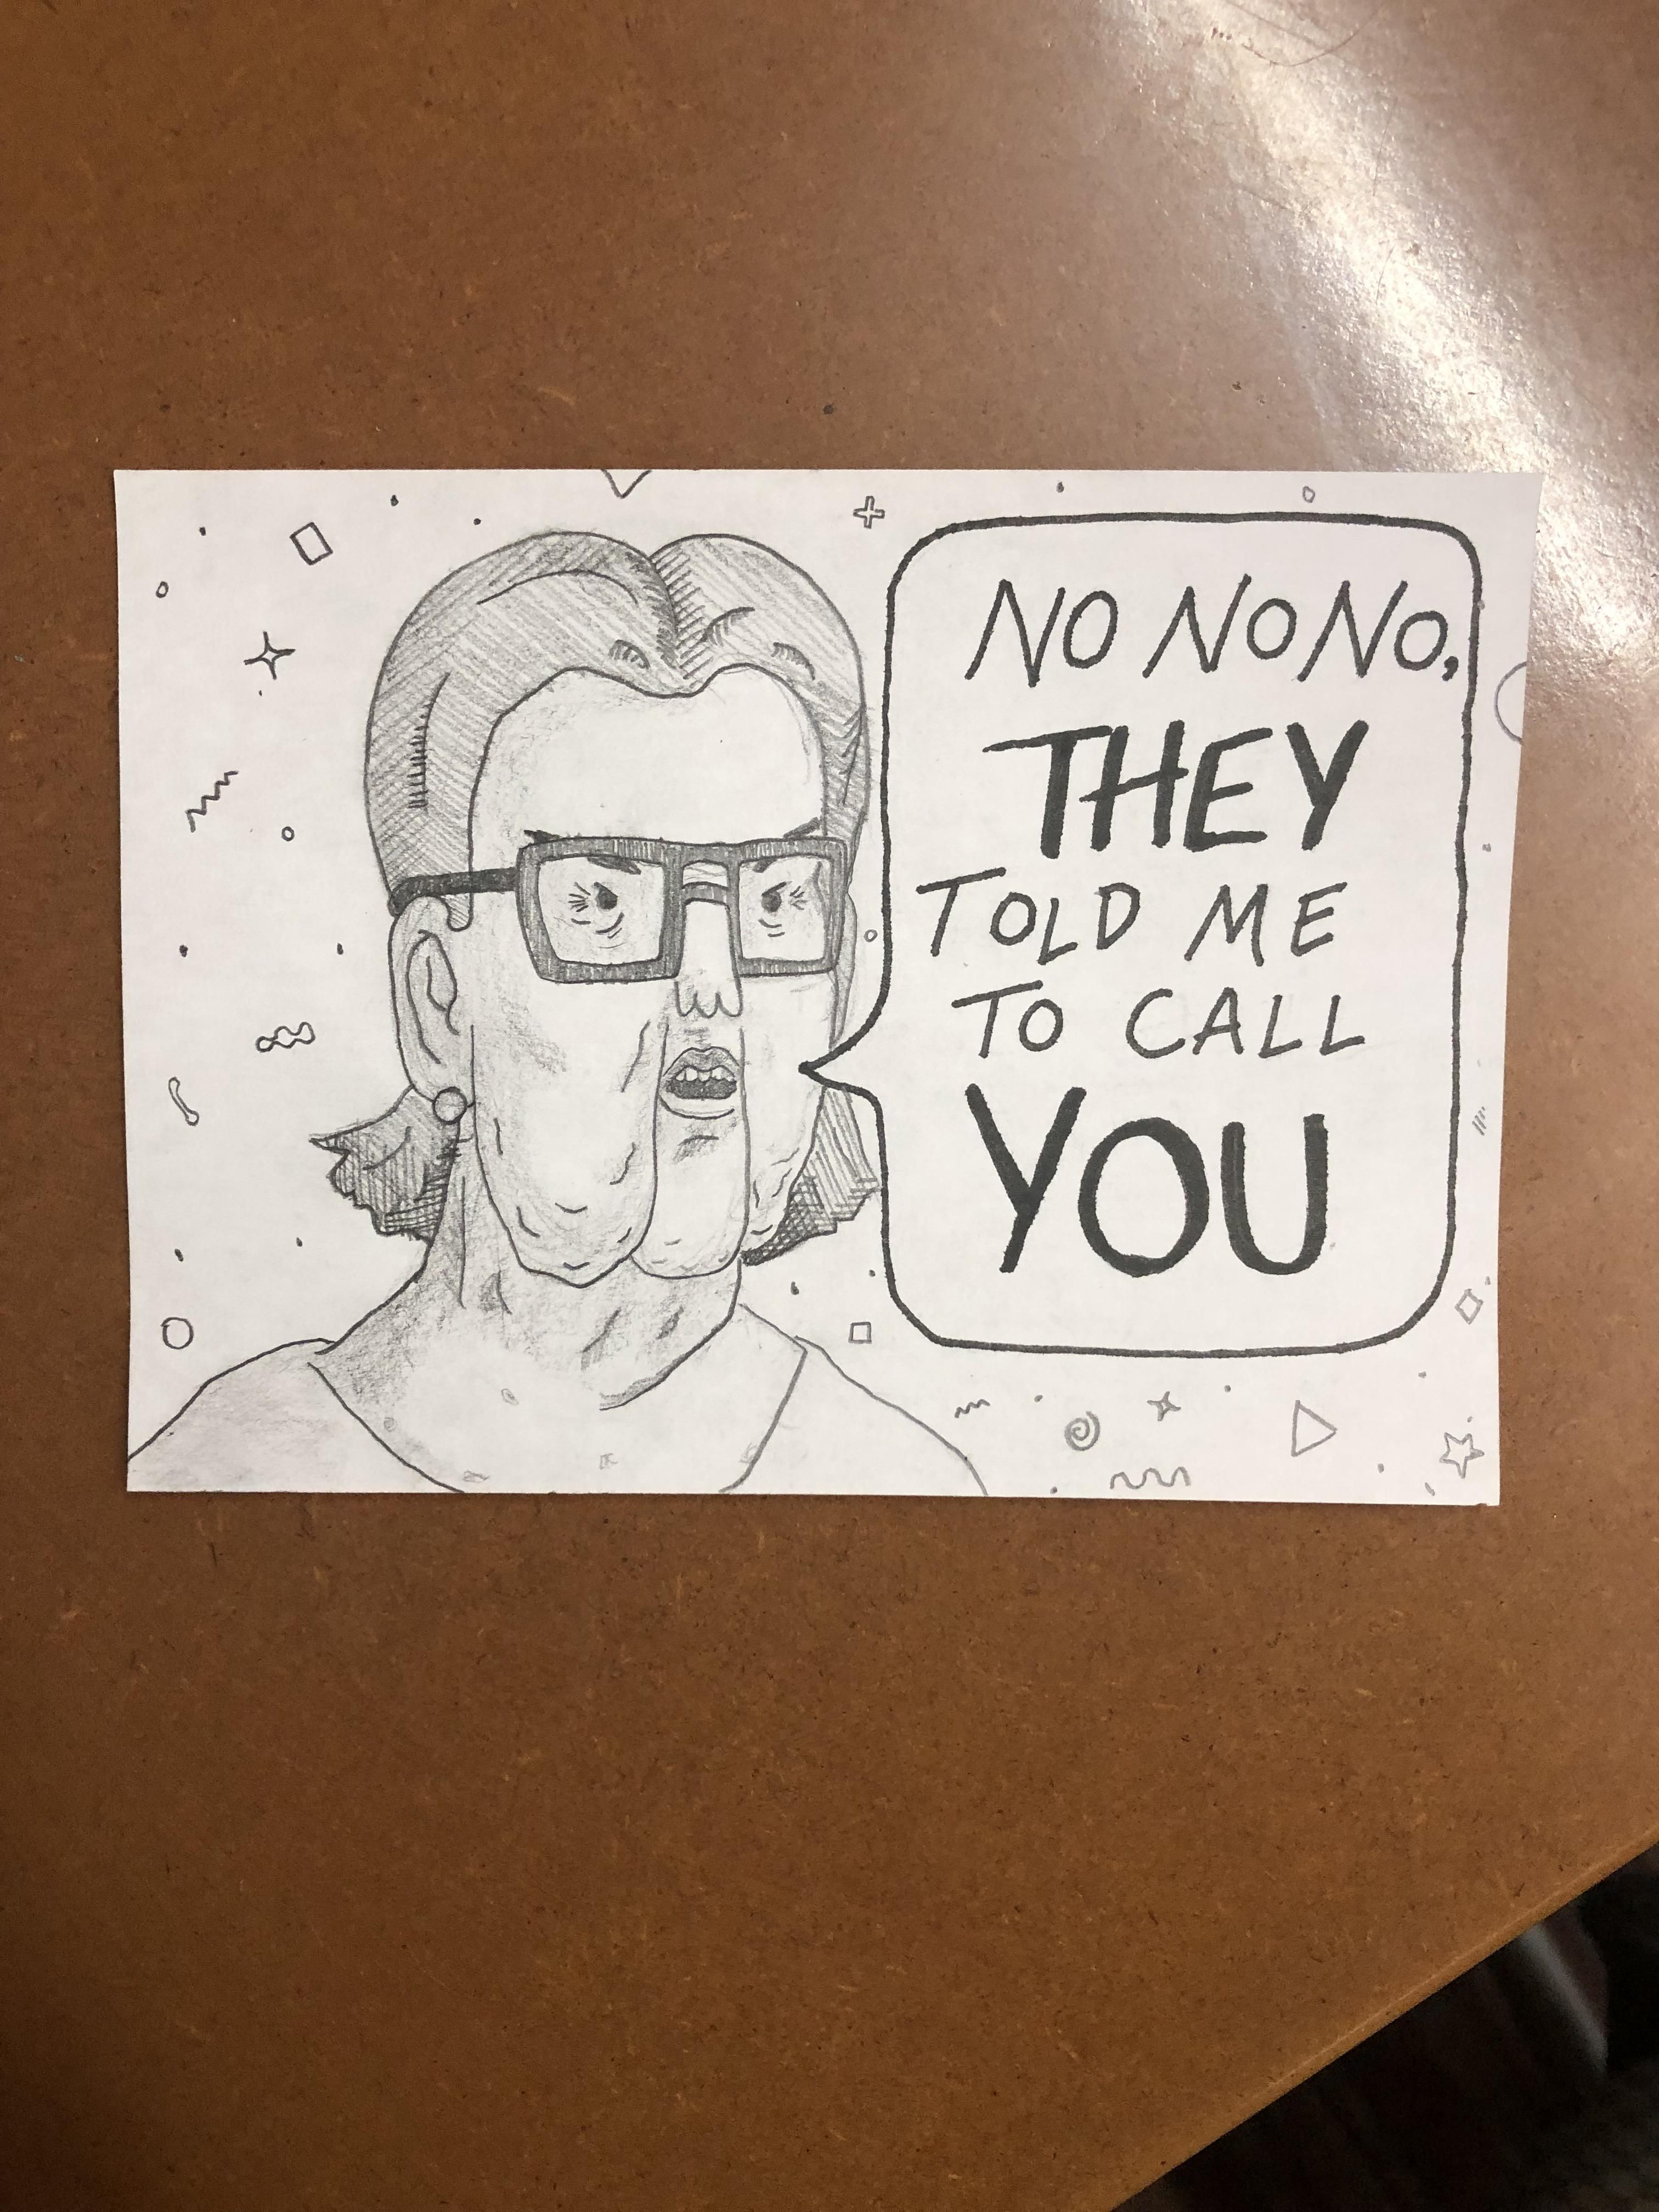 I work at a call center. Sometimes I like to draw my particularly rude callers. Here's Susan from today: